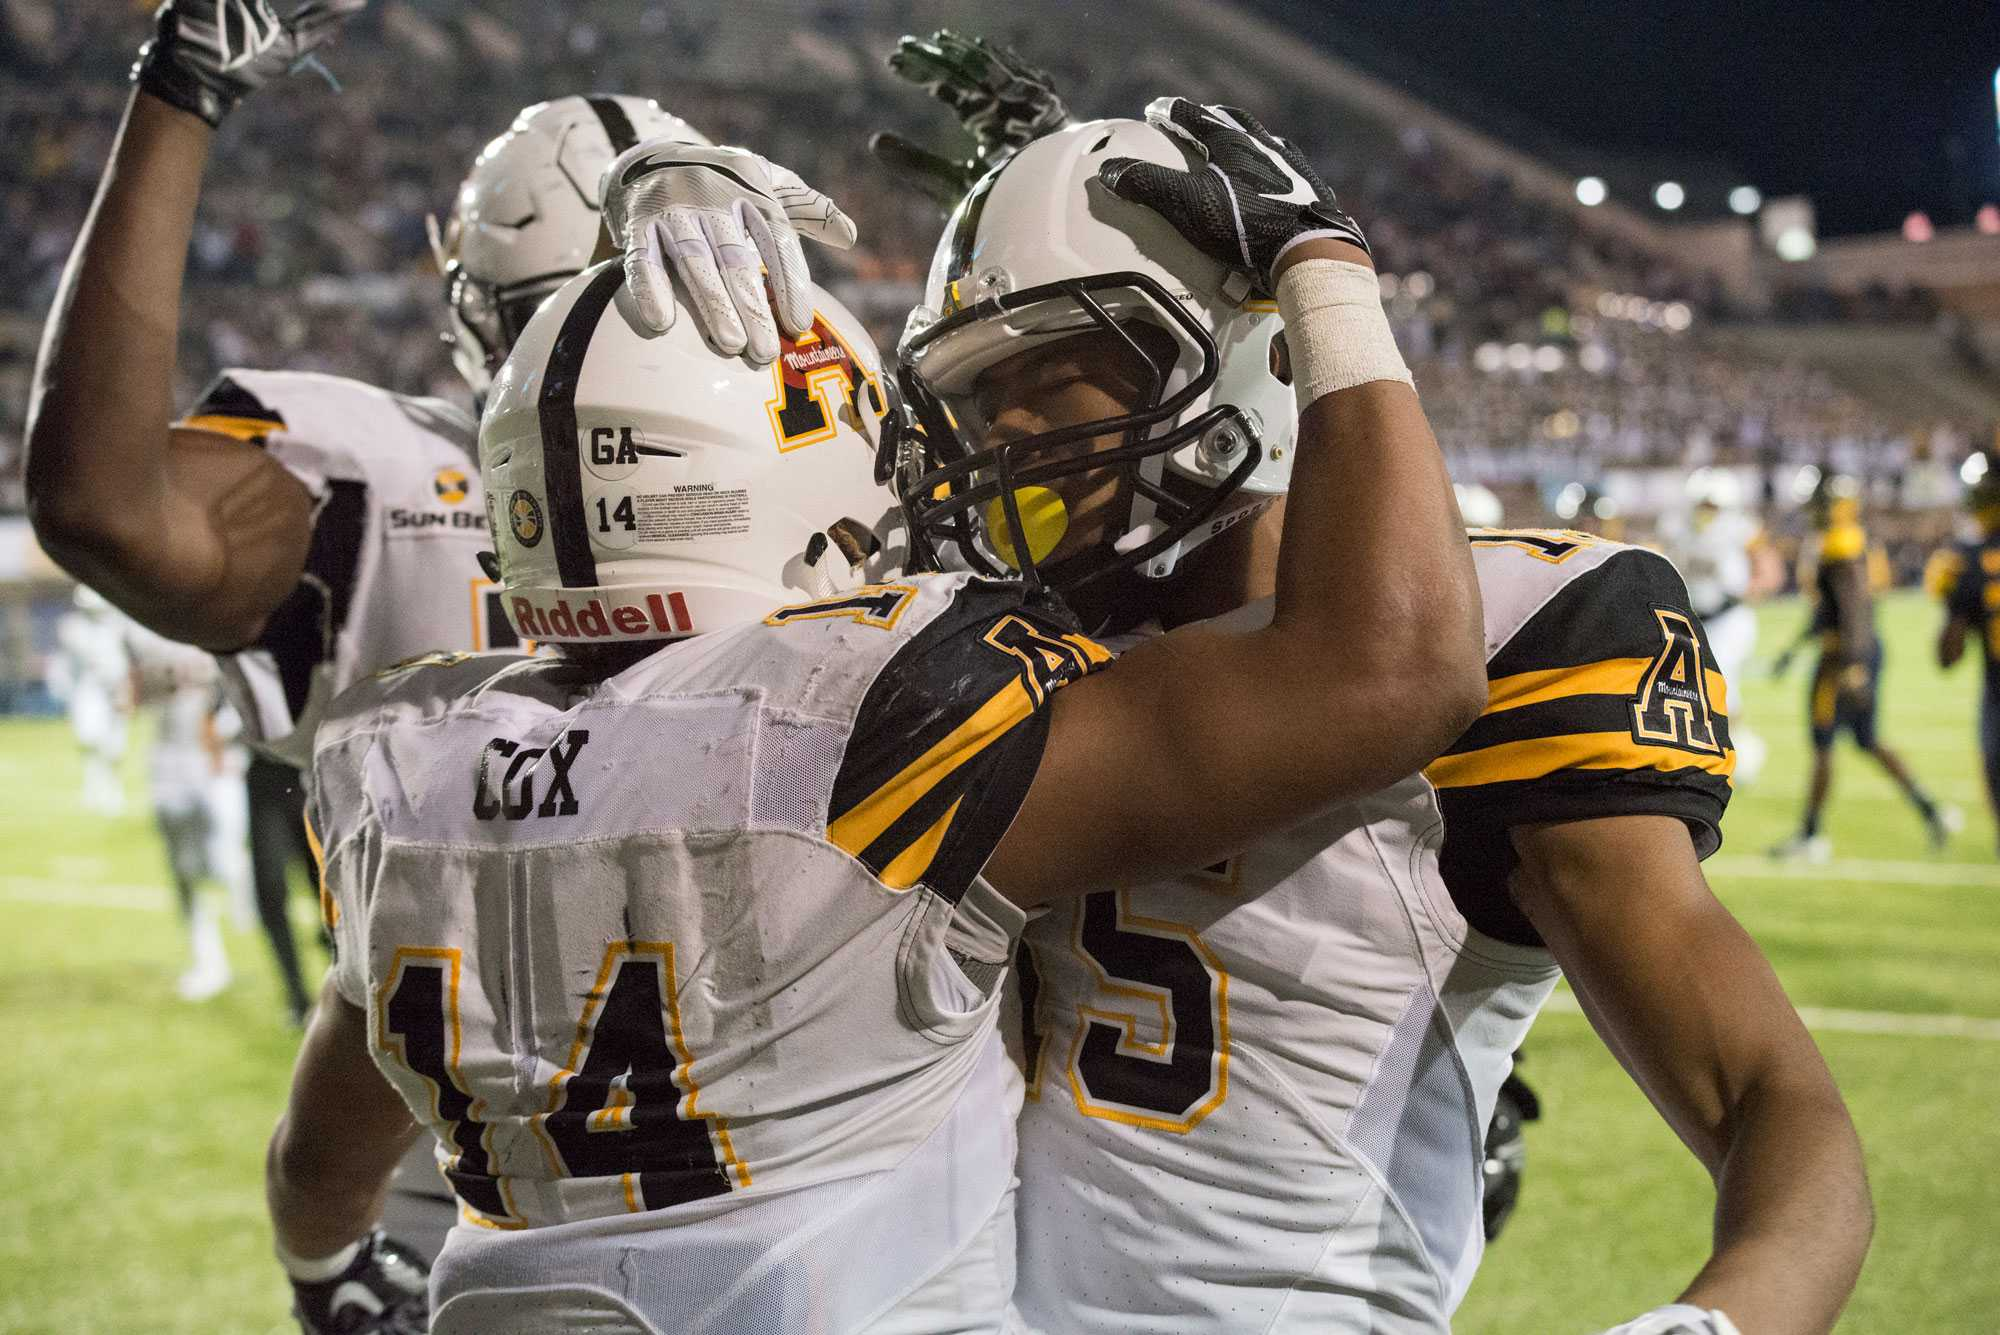 Senior Running Back, Marcus Cox, and freshman Wide Receiver, Mock Adams, celebrating the touchdown made by Cox at the game against Toledo at the Camellia Bowl in Montgomery, Alabama. The Mountaineers won the bowl game with the score being 31-28.   Photo by: Halle Keighton